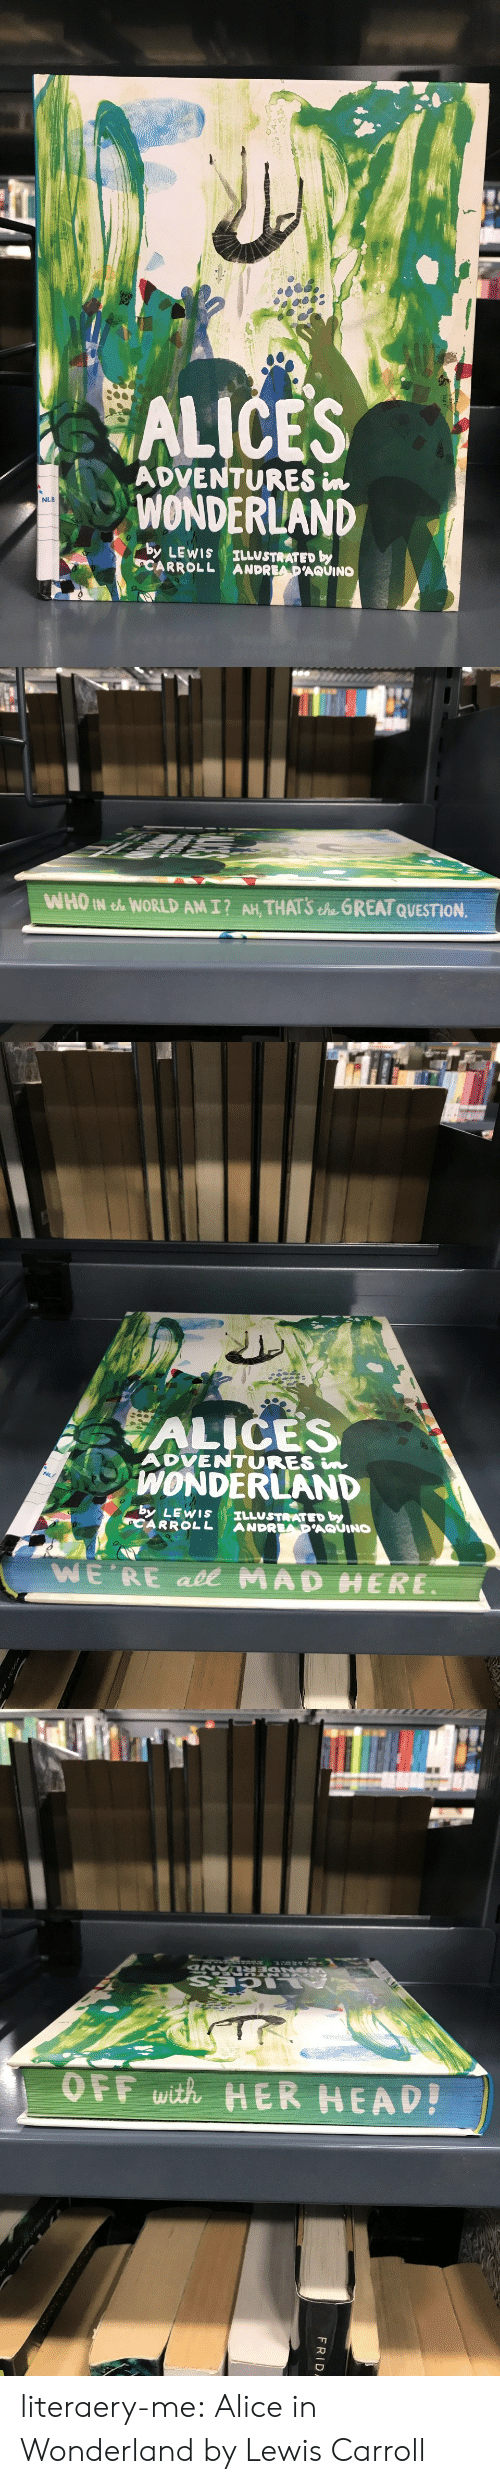 alice in wonderland: ADVENTURES in  WONDERLAND  NLB  by LEWIs ILLUSTRATED by  CARROLL ANDREADAQUINO   ALIČES  ADVENTURES n  WONDERLAND  ARROLL ANDRAUINO  NLF  by LEWIS ILLUSTRATED by  WE'RE ade MAD  ERE.   OFF with HER HEAD literaery-me: Alice in Wonderland by Lewis Carroll